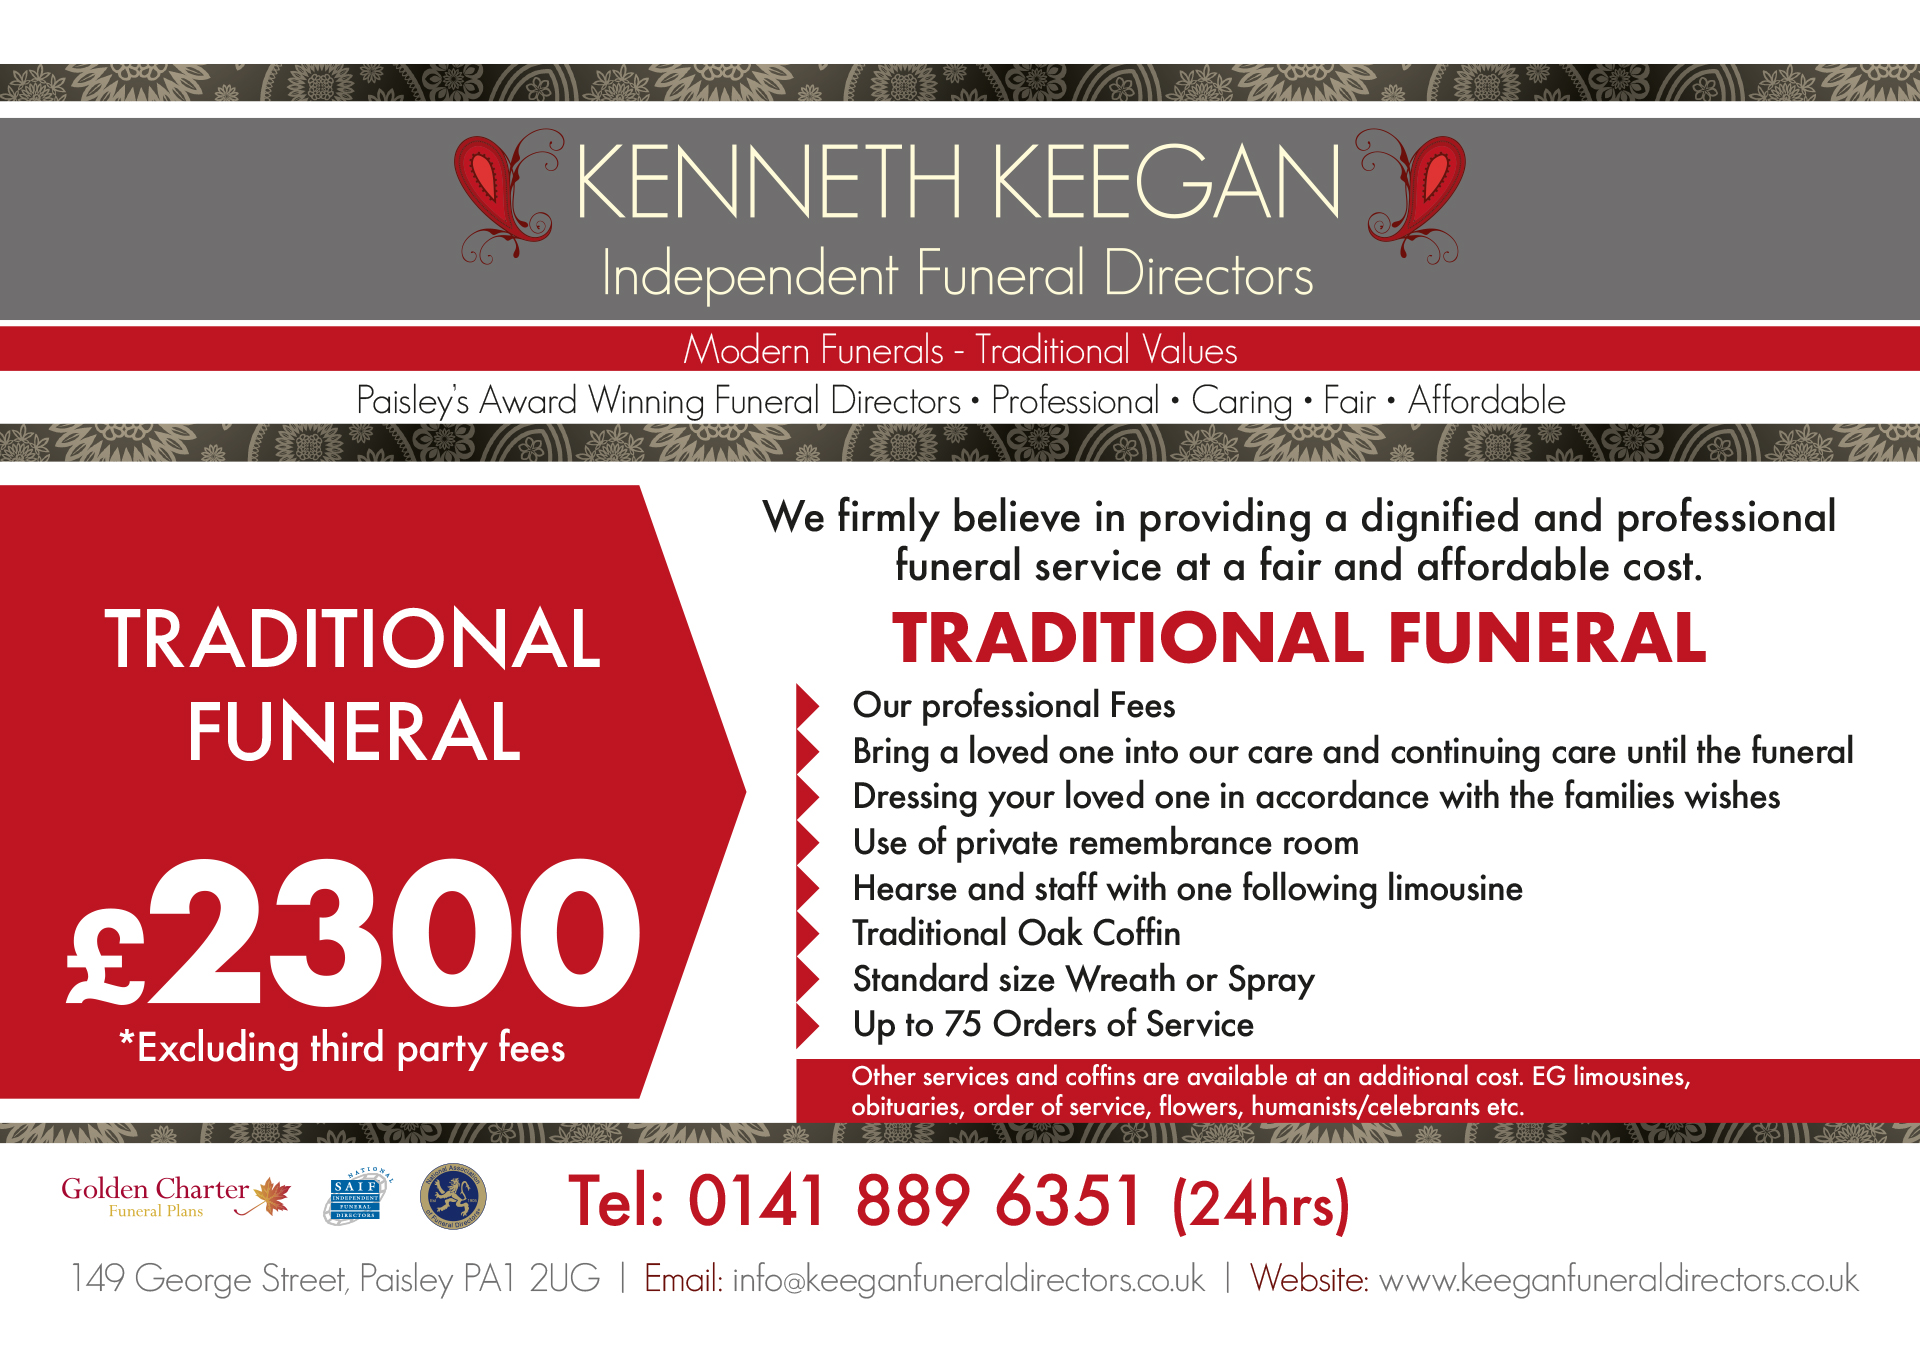 Kenneth-Keegan-Traditional-Funeral-A4L-13-11-20